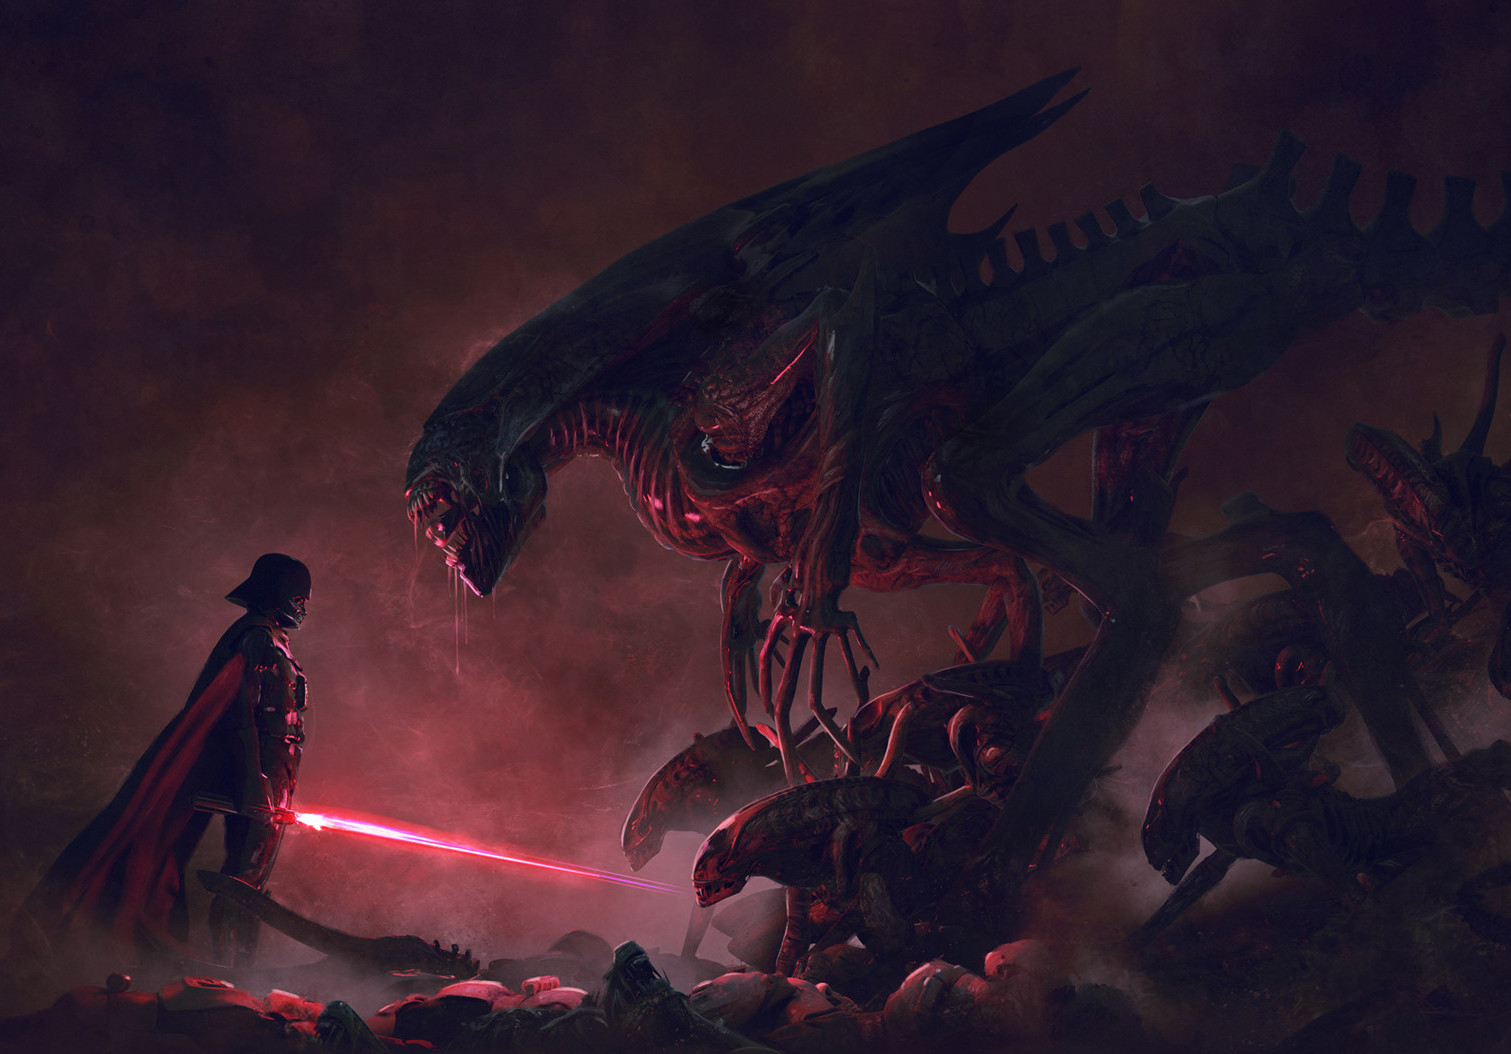 Darth Vader & 501st Legion vs. Aliens